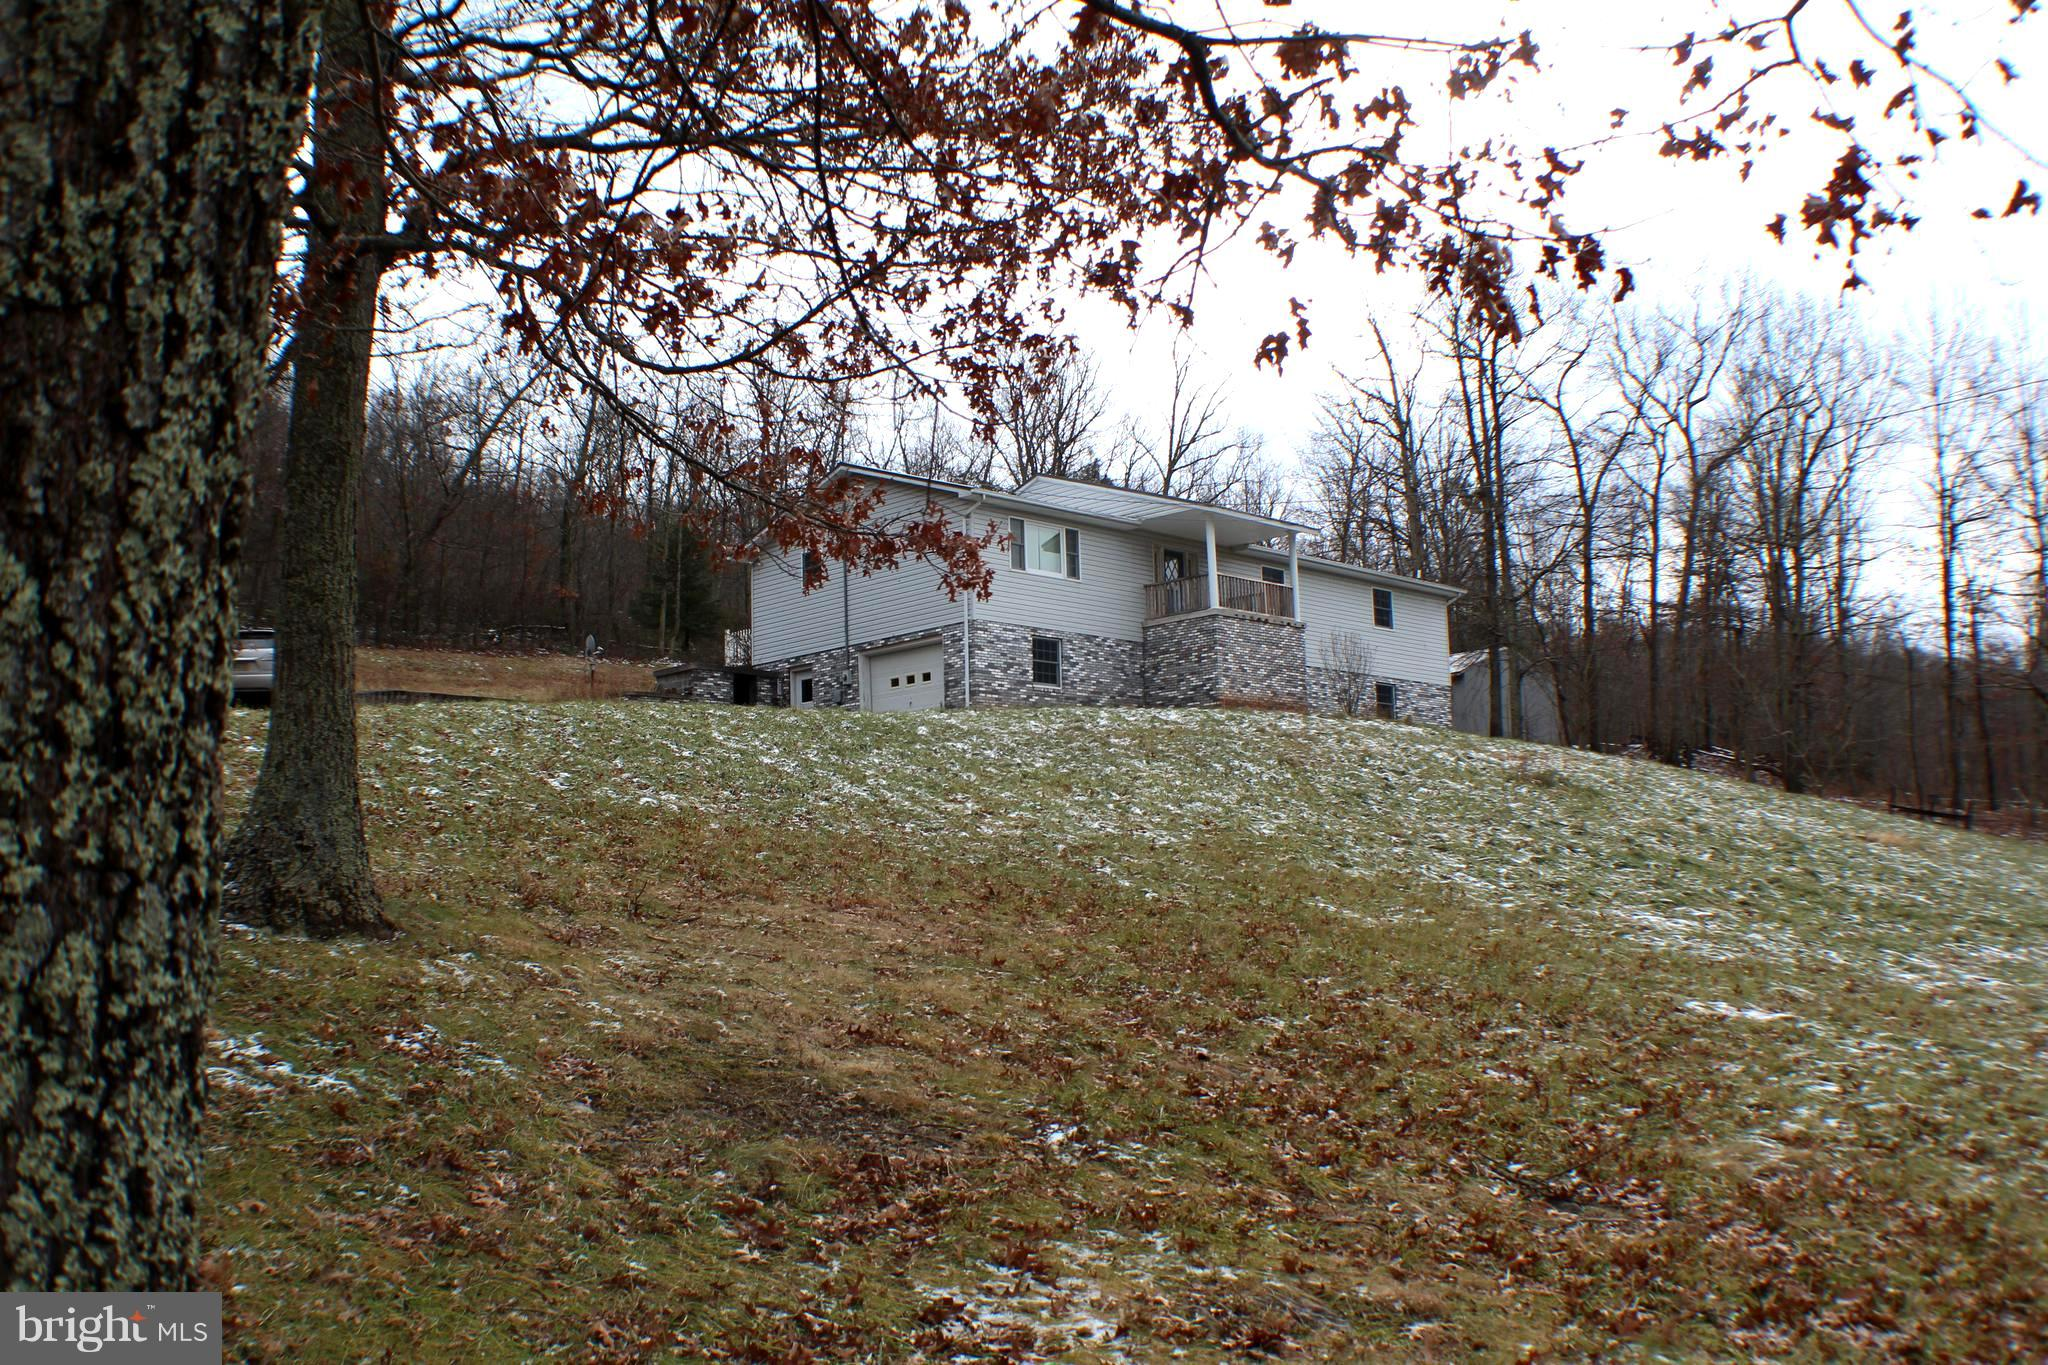 2823 LOWER TIMBER RIDGE ROAD, SENECA ROCKS, WV 26884